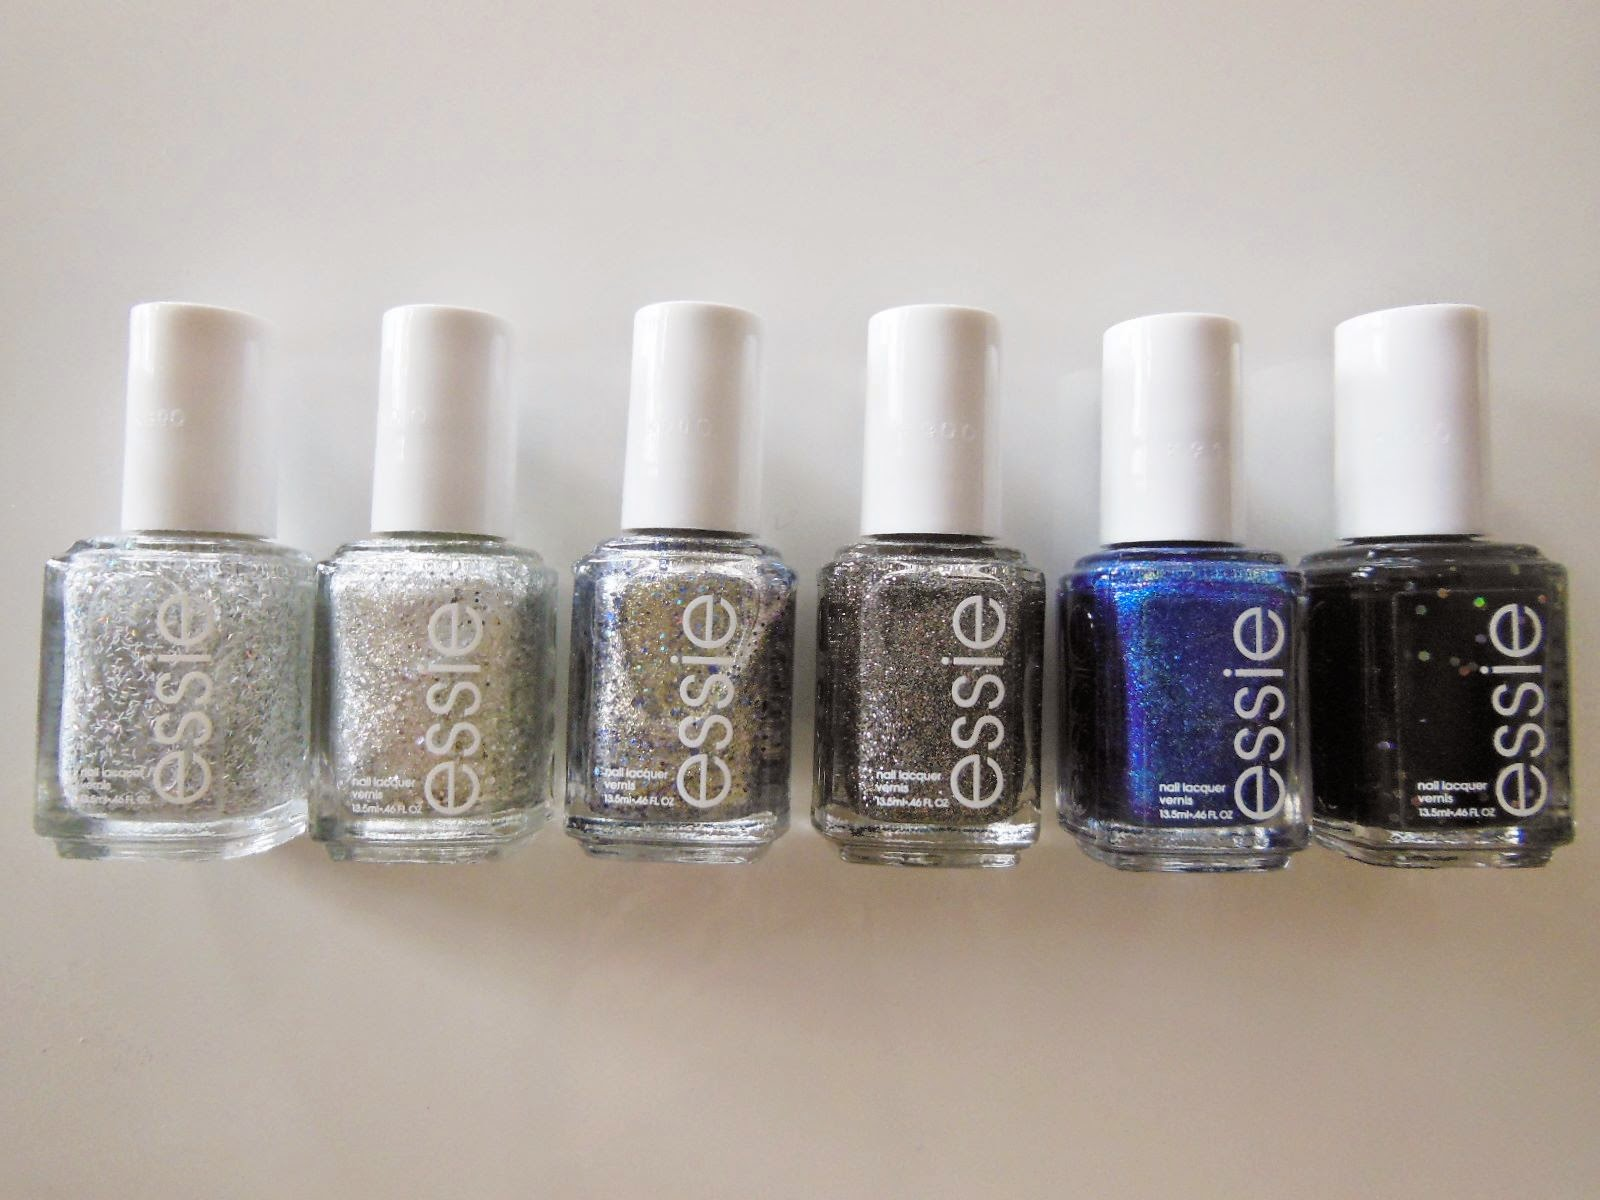 Essie Nail Polish Bottle Dimensions - Absolute cycle